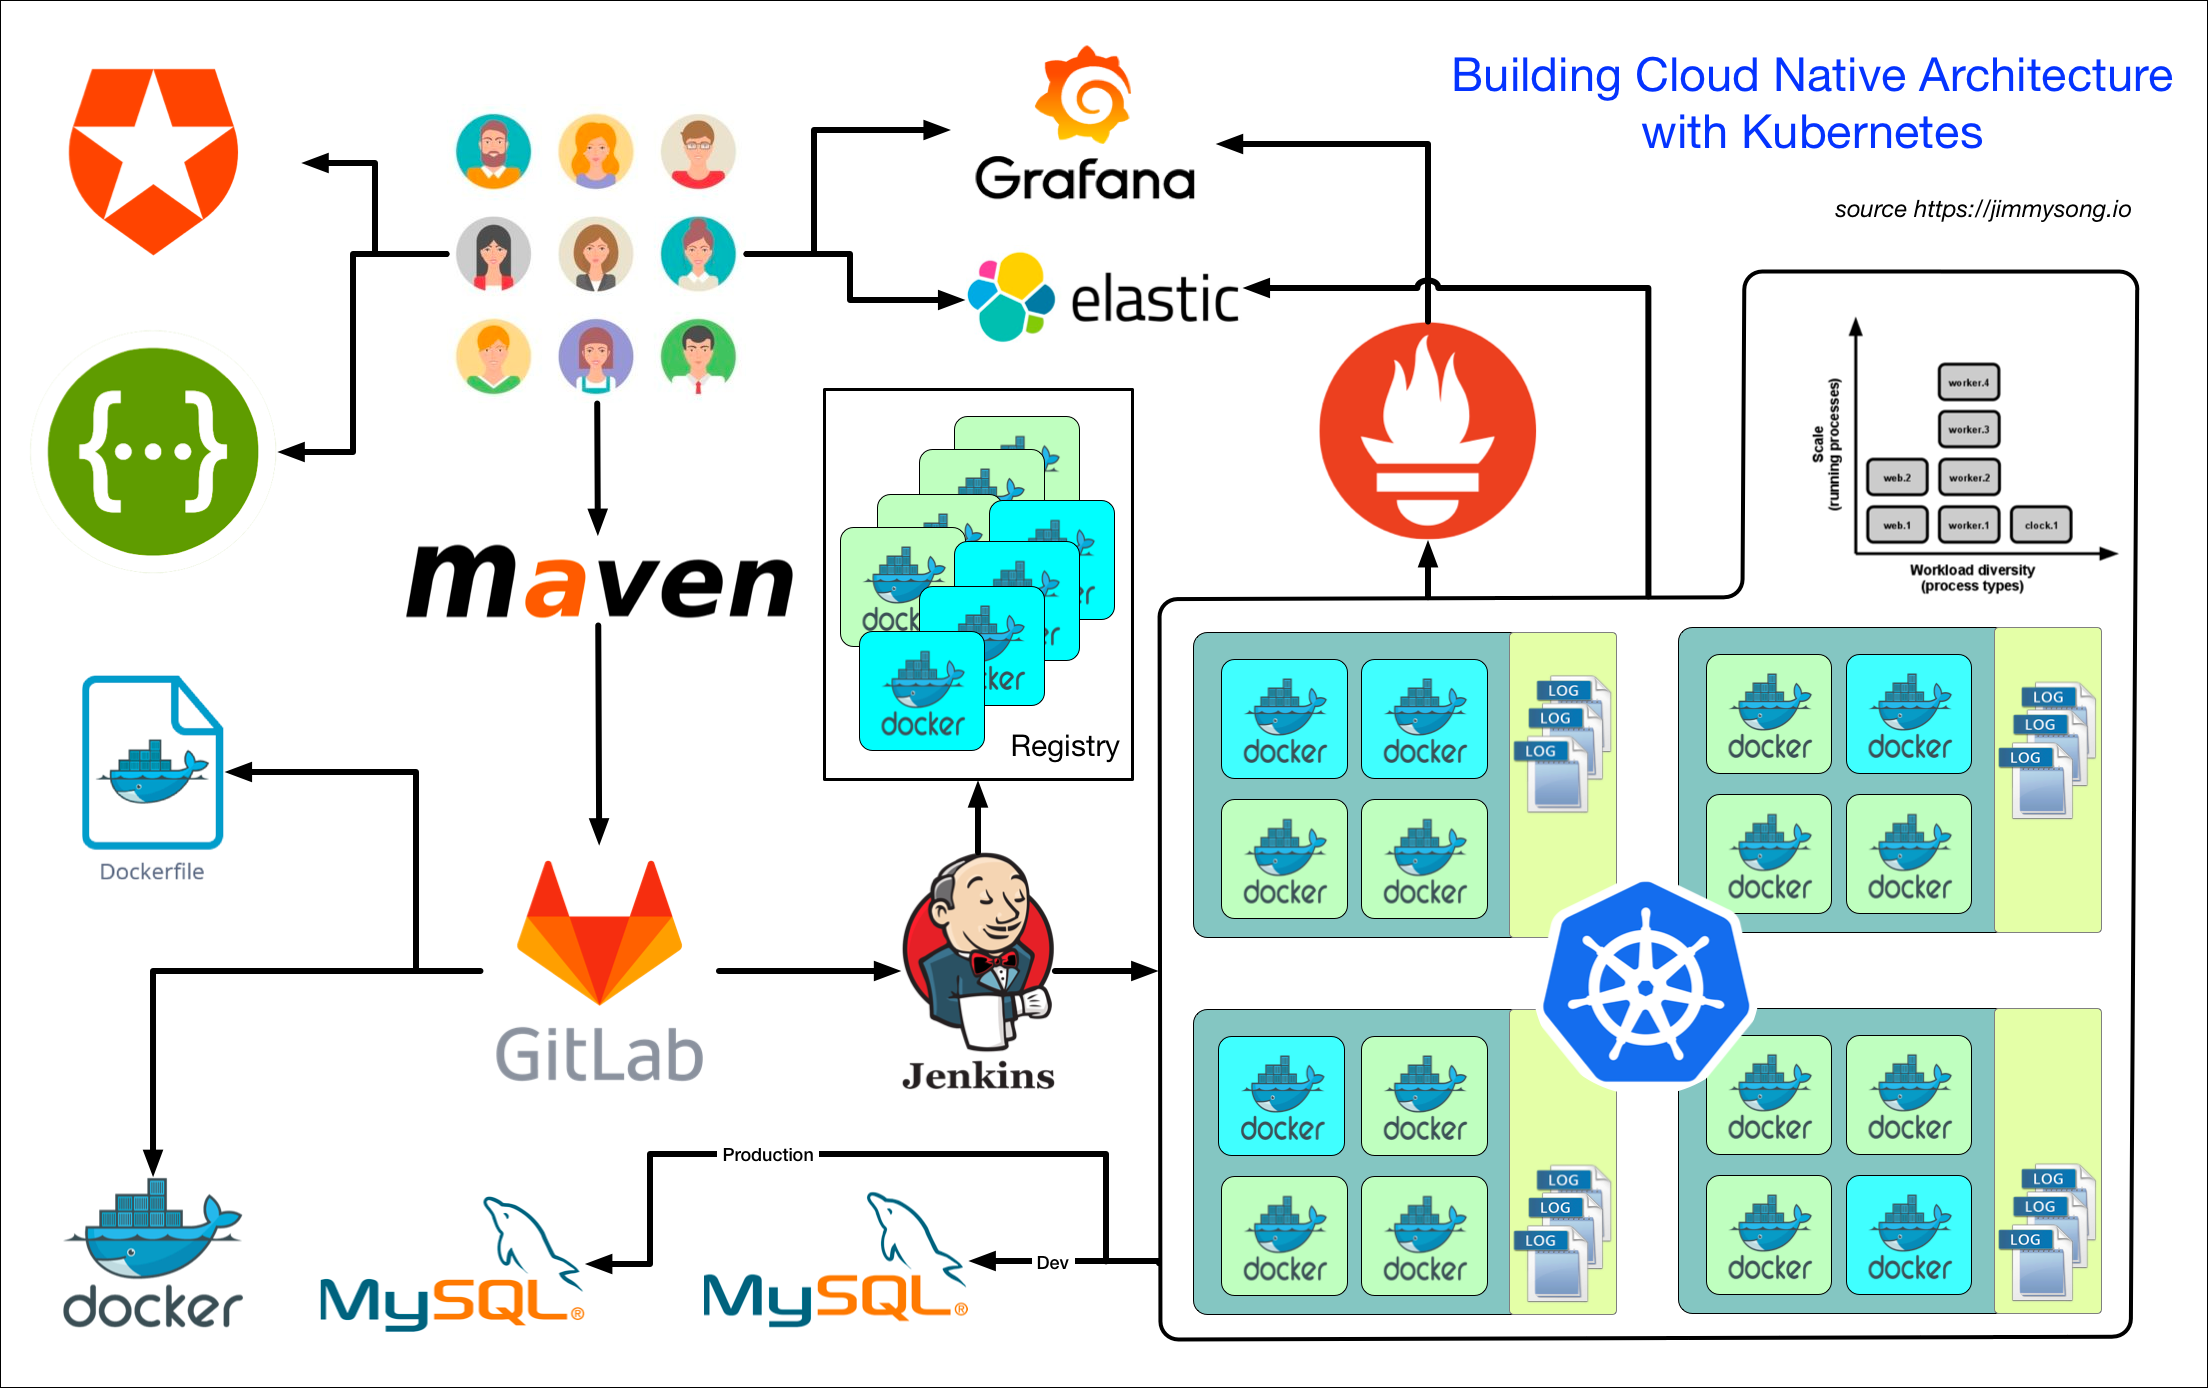 Building a Cloud Native Architecture with Kubernetes followed 12 factor app